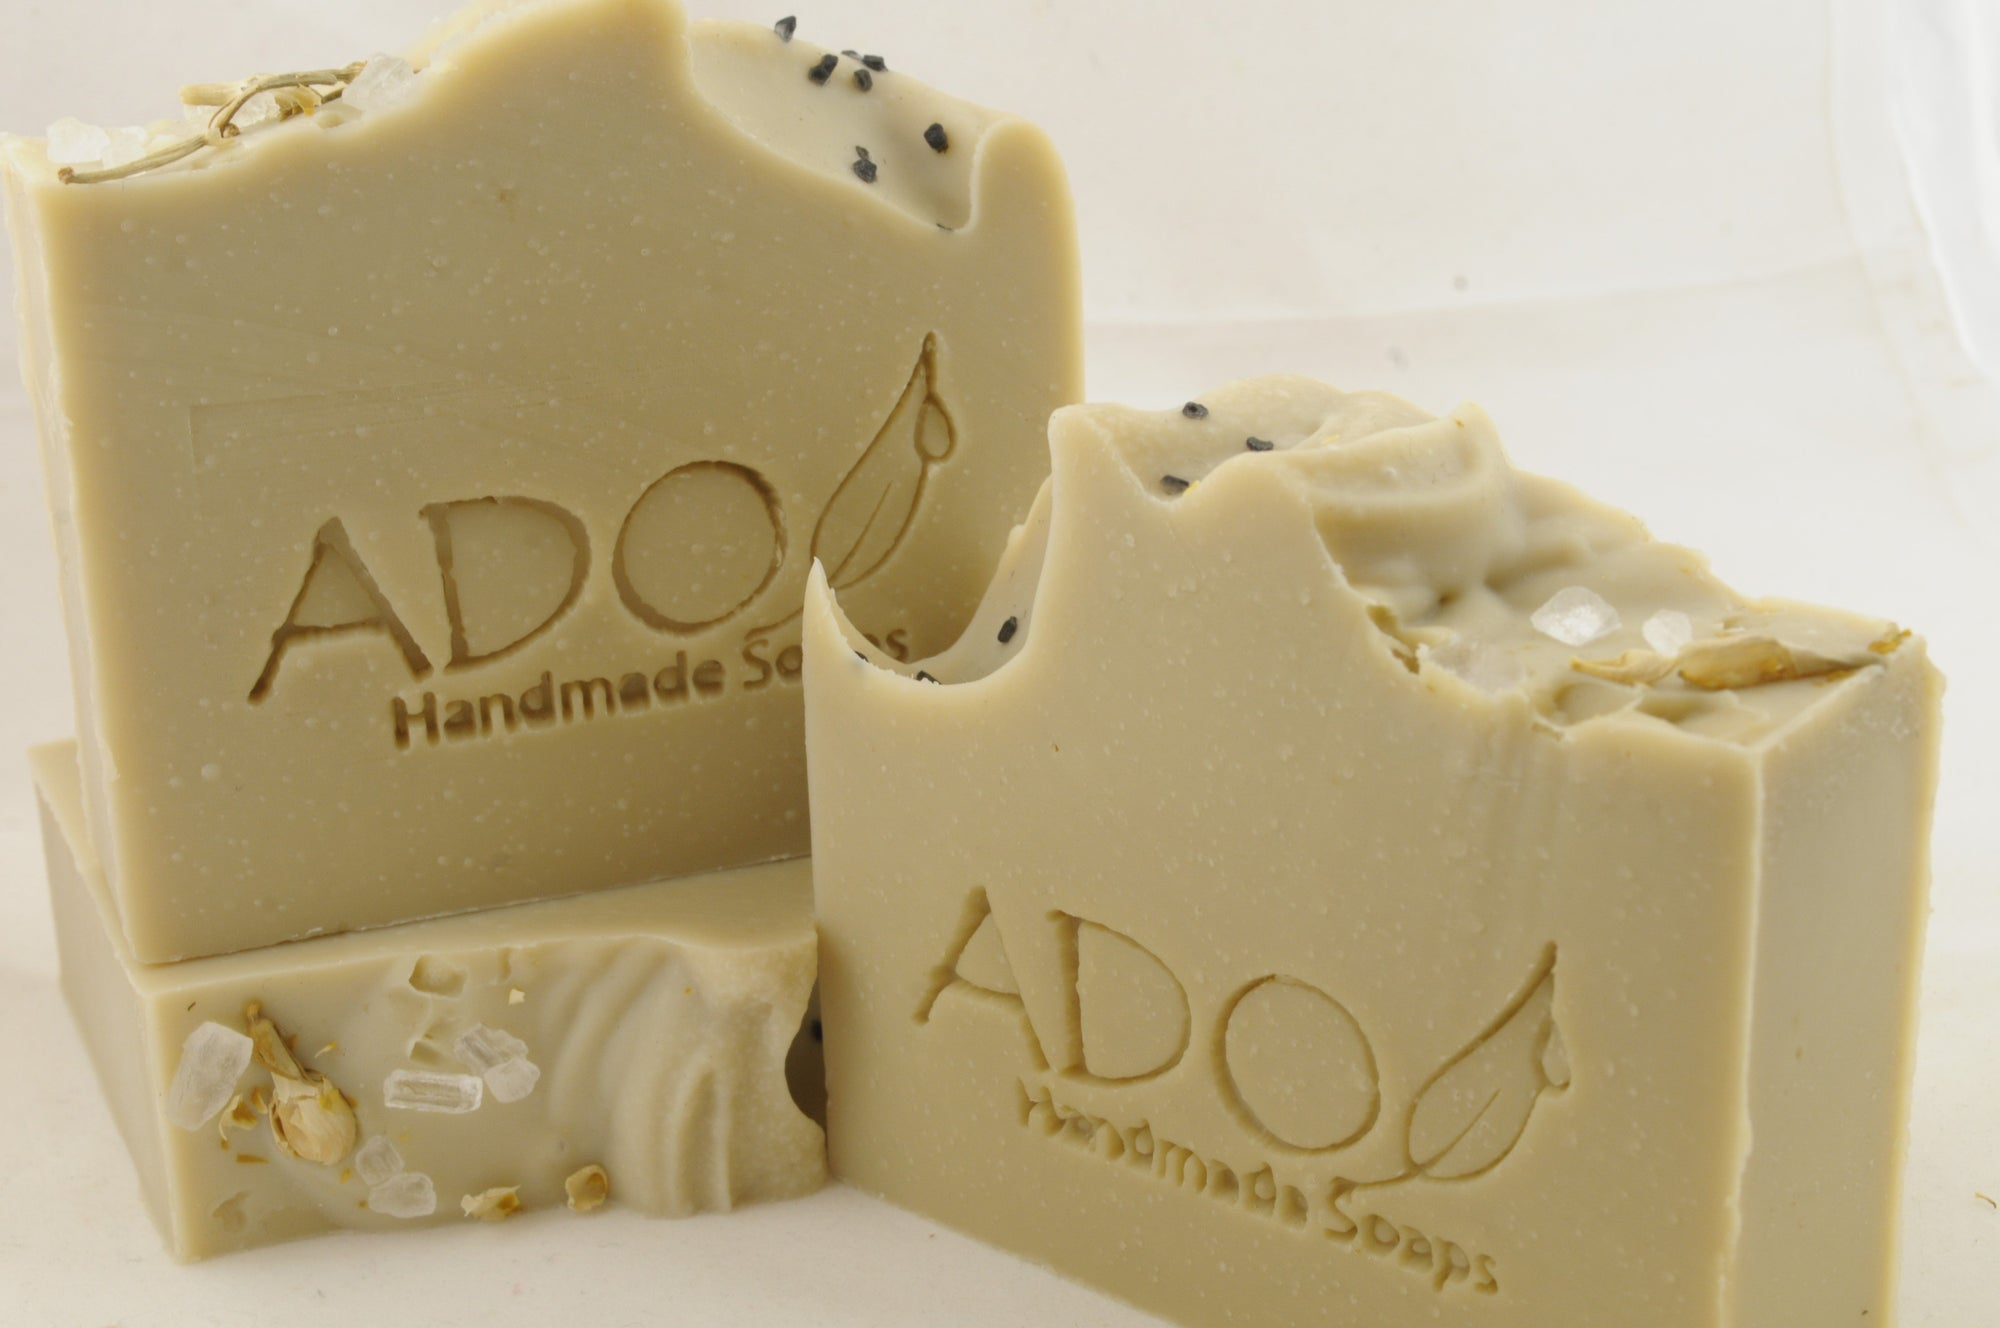 a group of three bars of laurel berry soap against a plain background